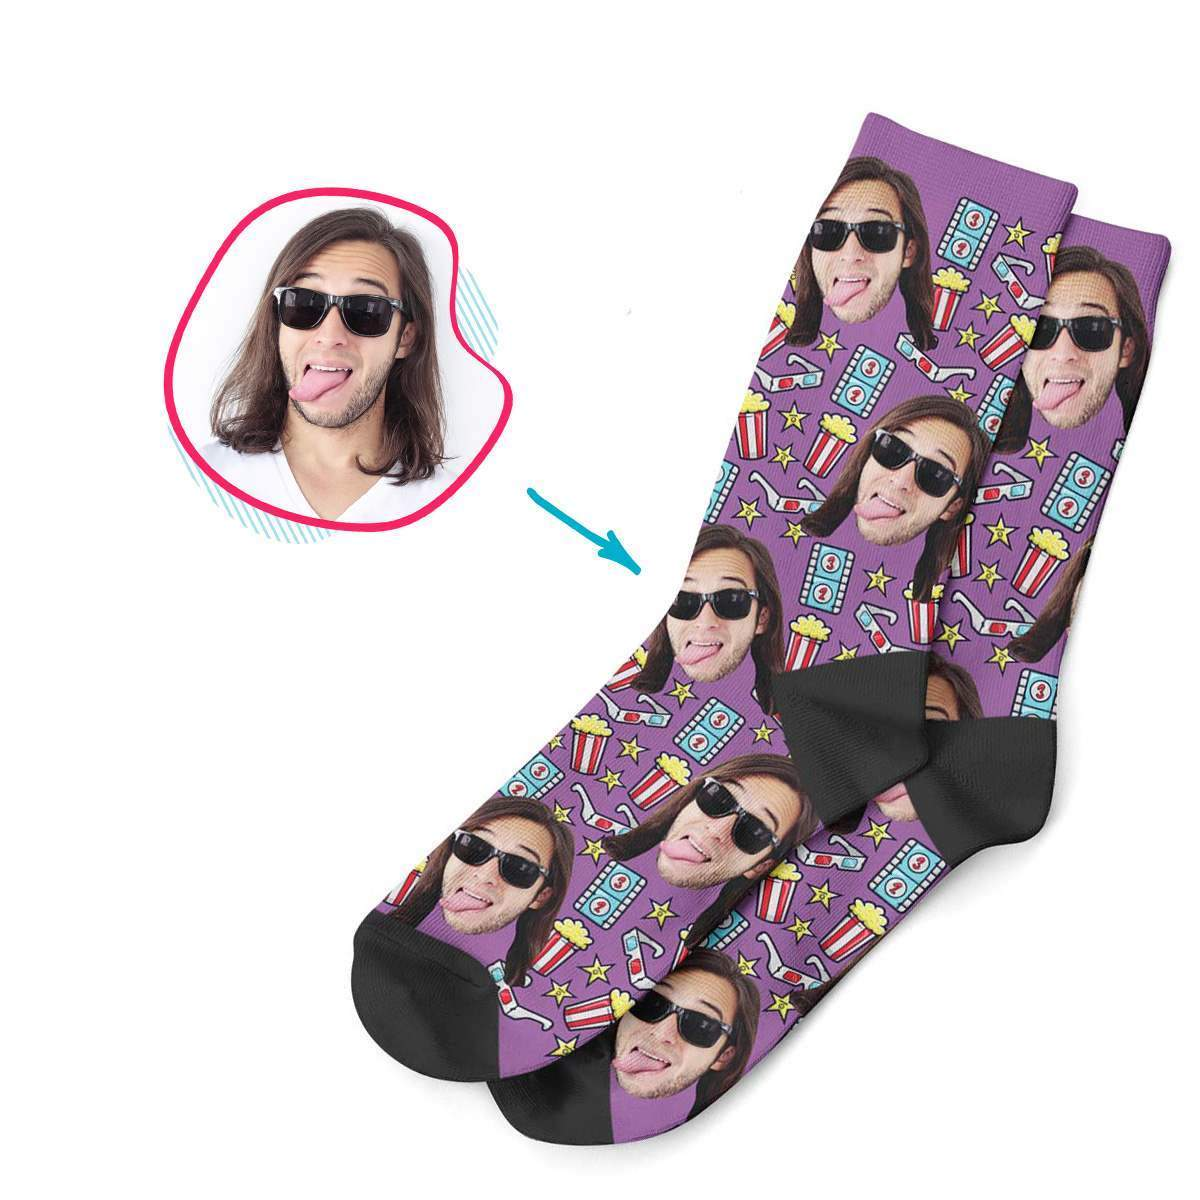 purple Movie socks personalized with photo of face printed on them